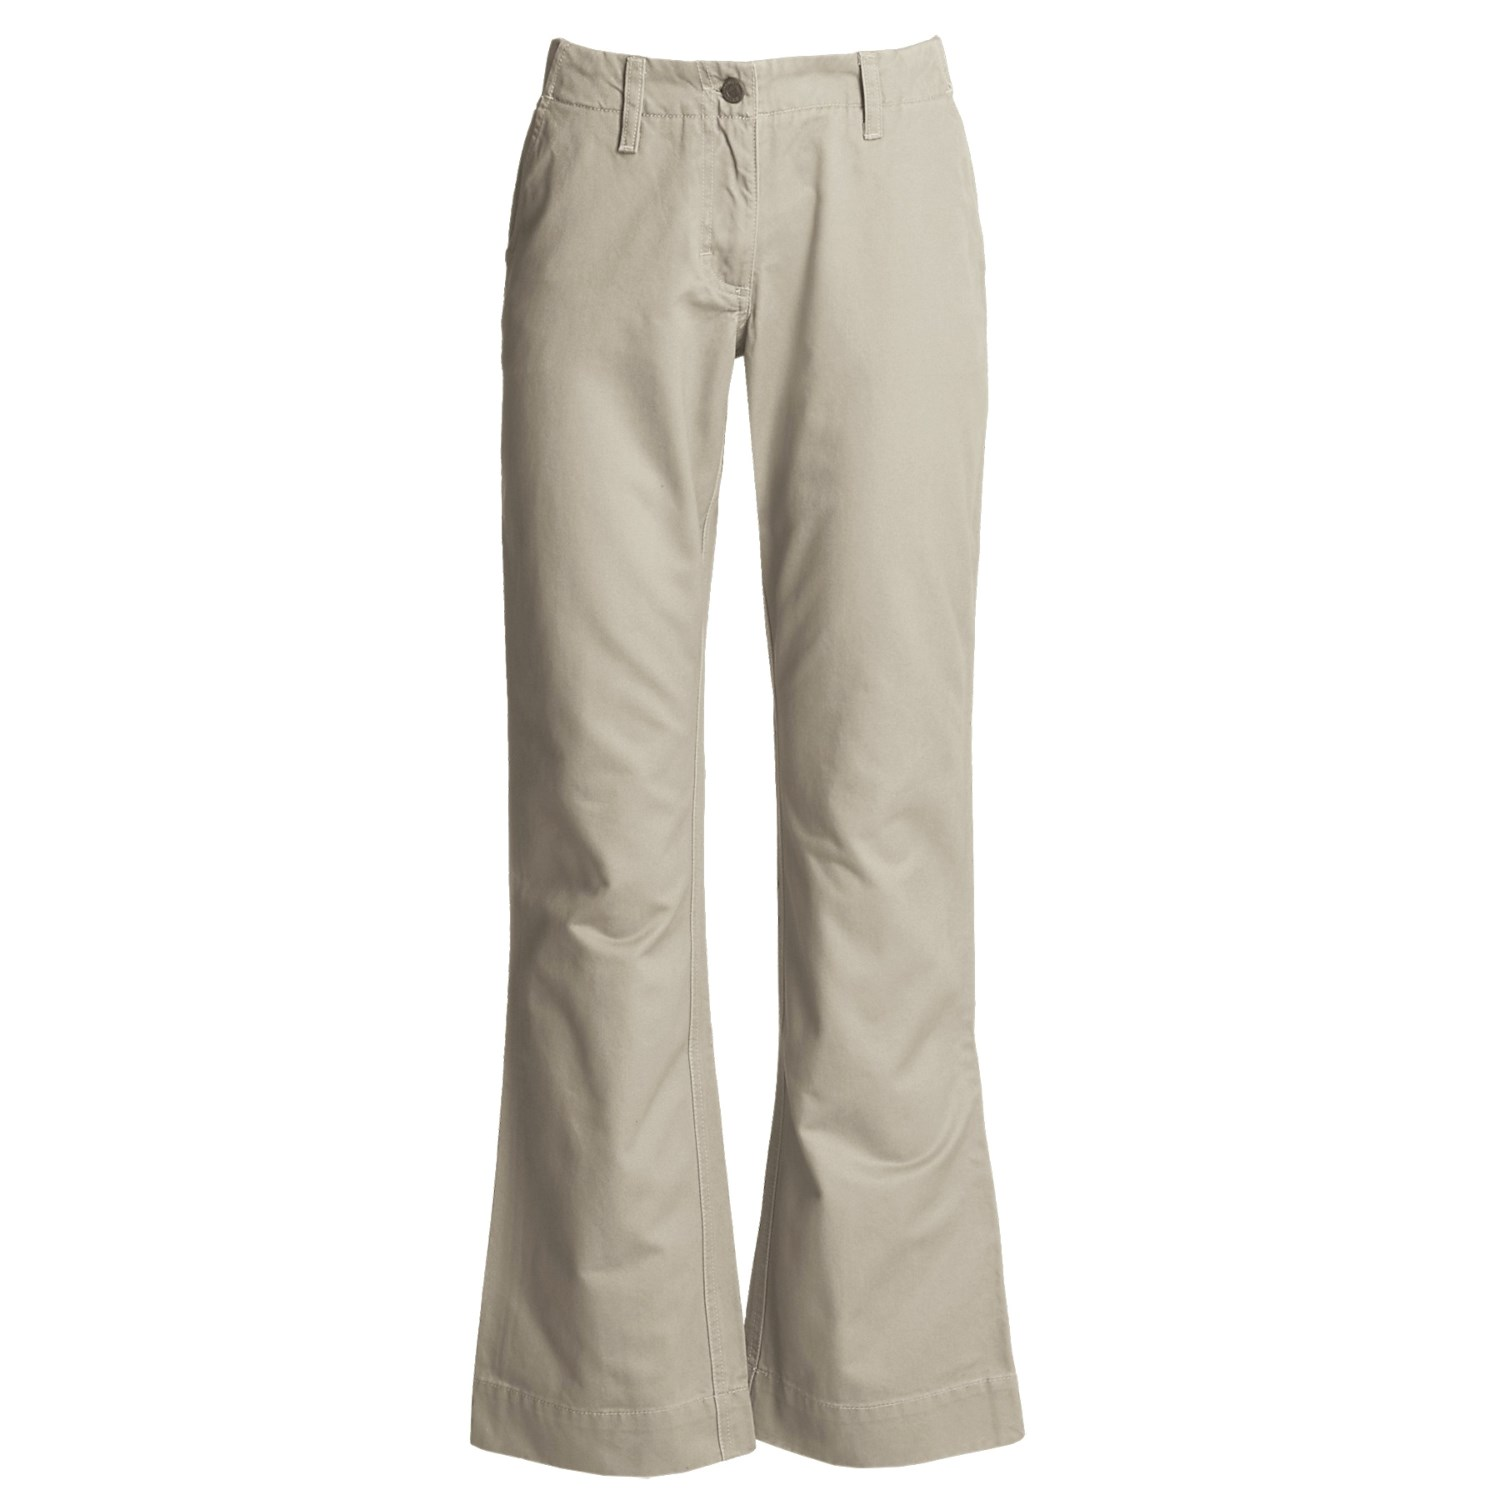 Brilliant Pics Photos  Khaki Pants For Women